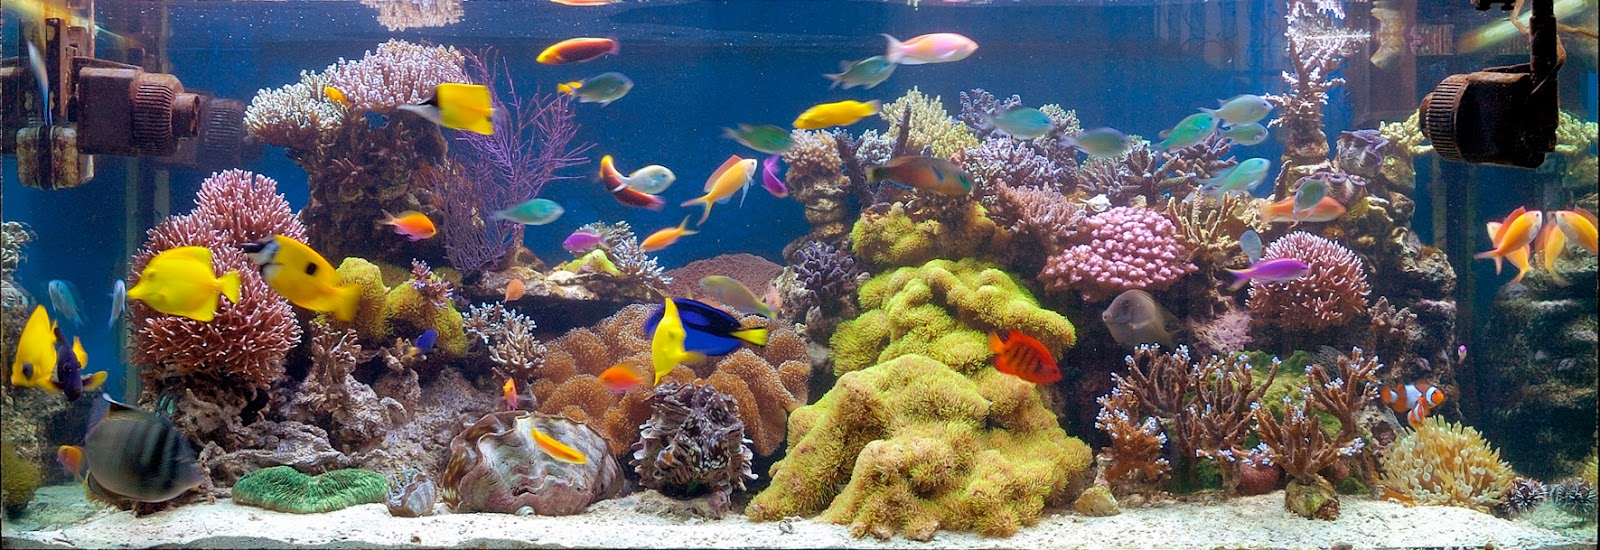 File:Reef Aquarium.jpg